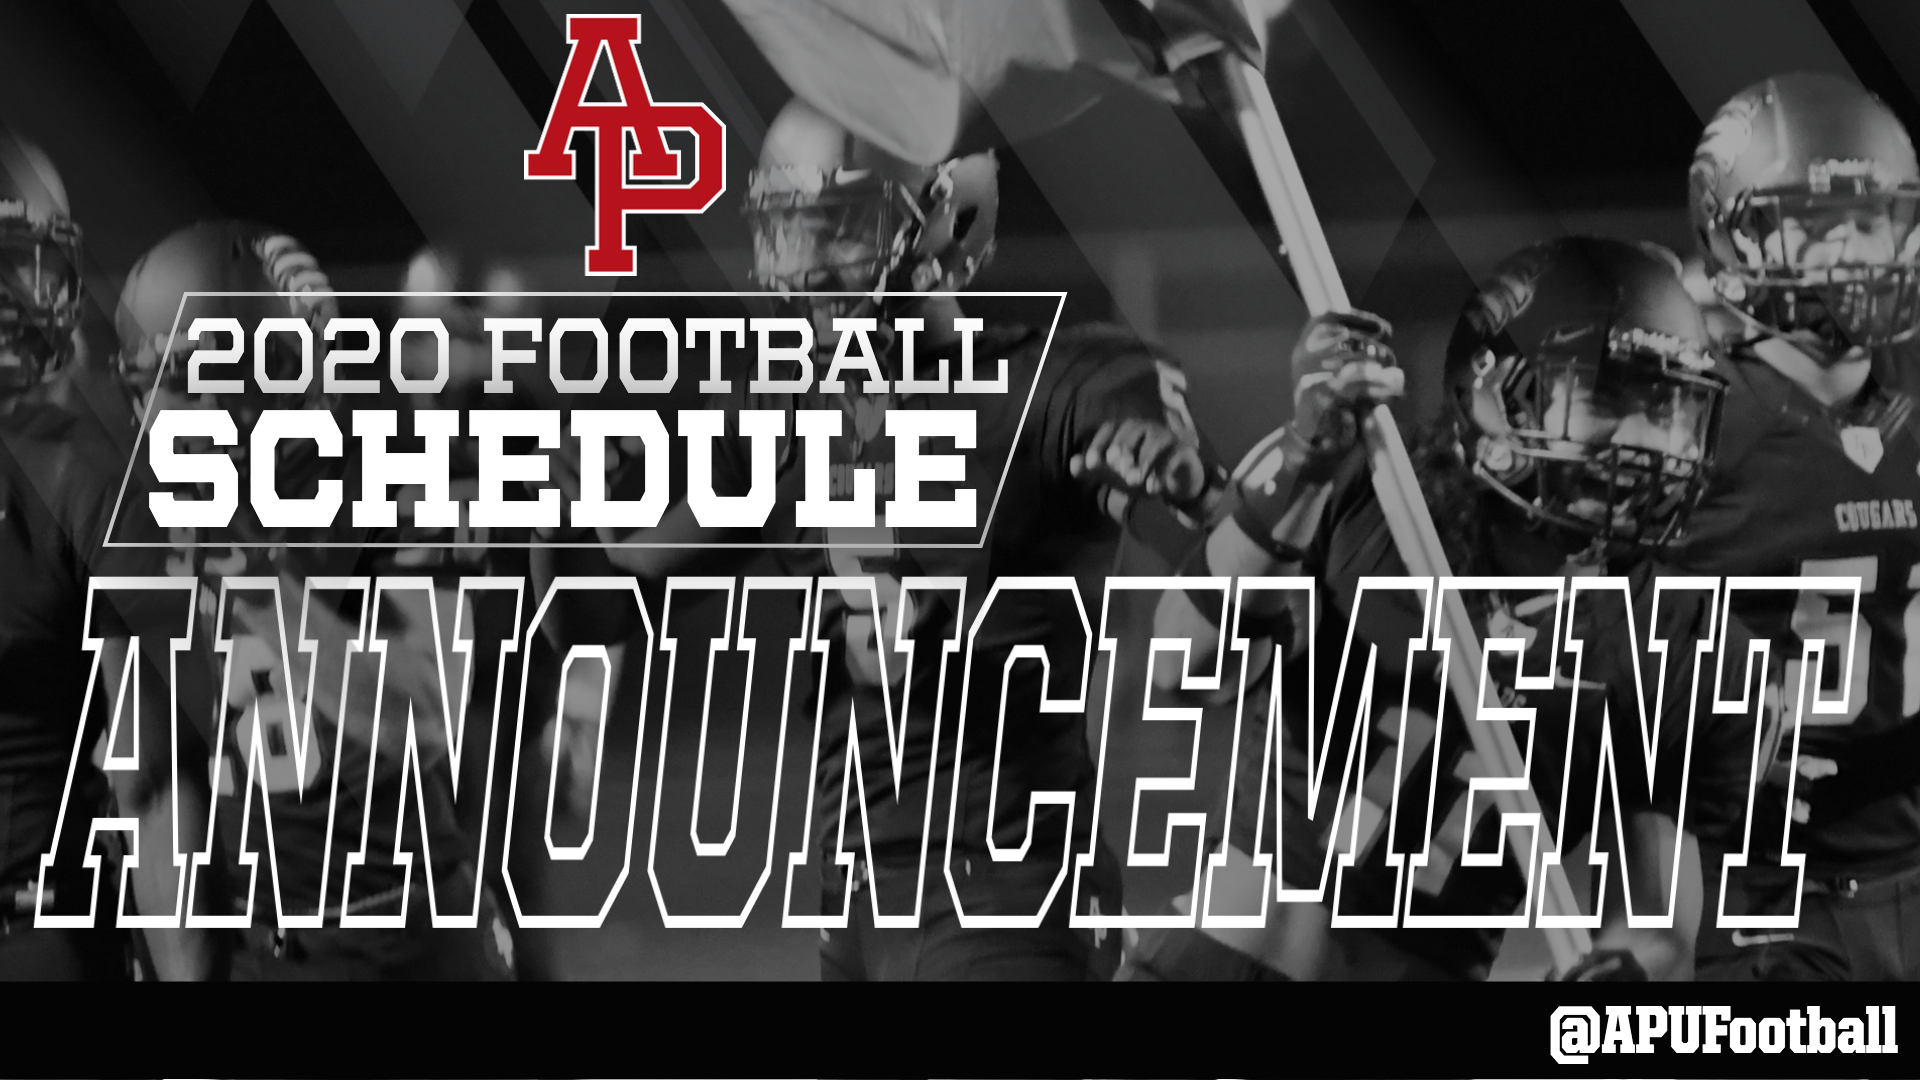 2020 a&m football schedule